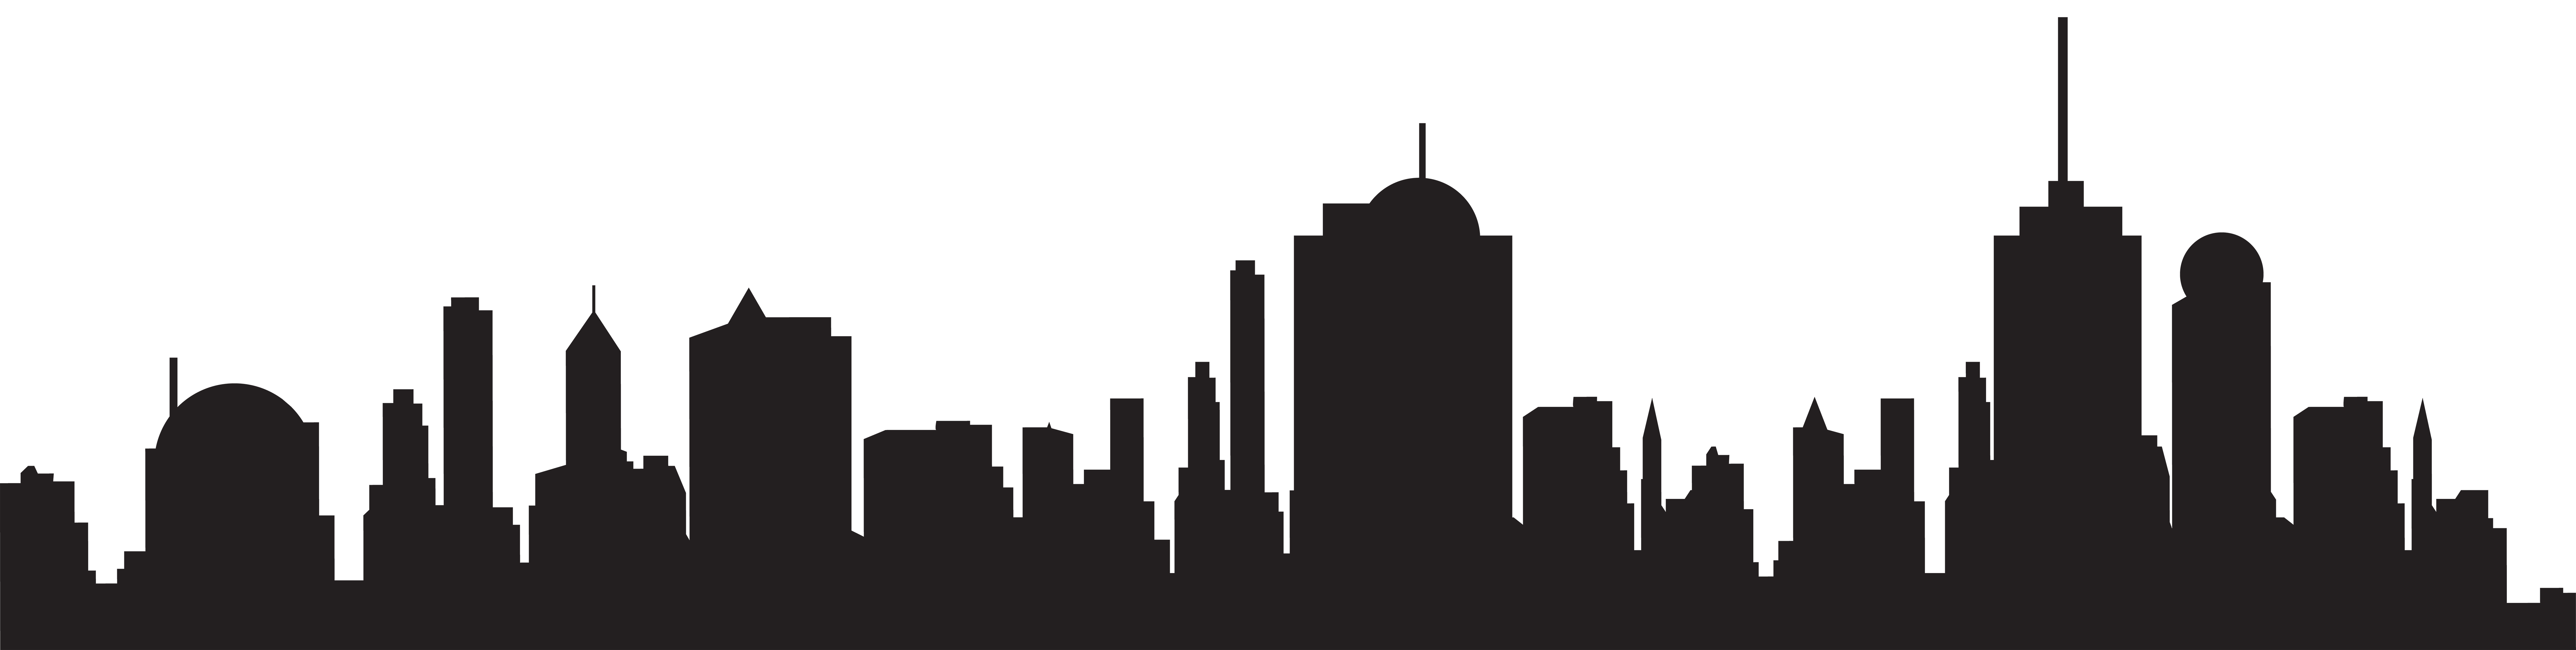 New york skyline free. Seattle vector silhouette image royalty free download